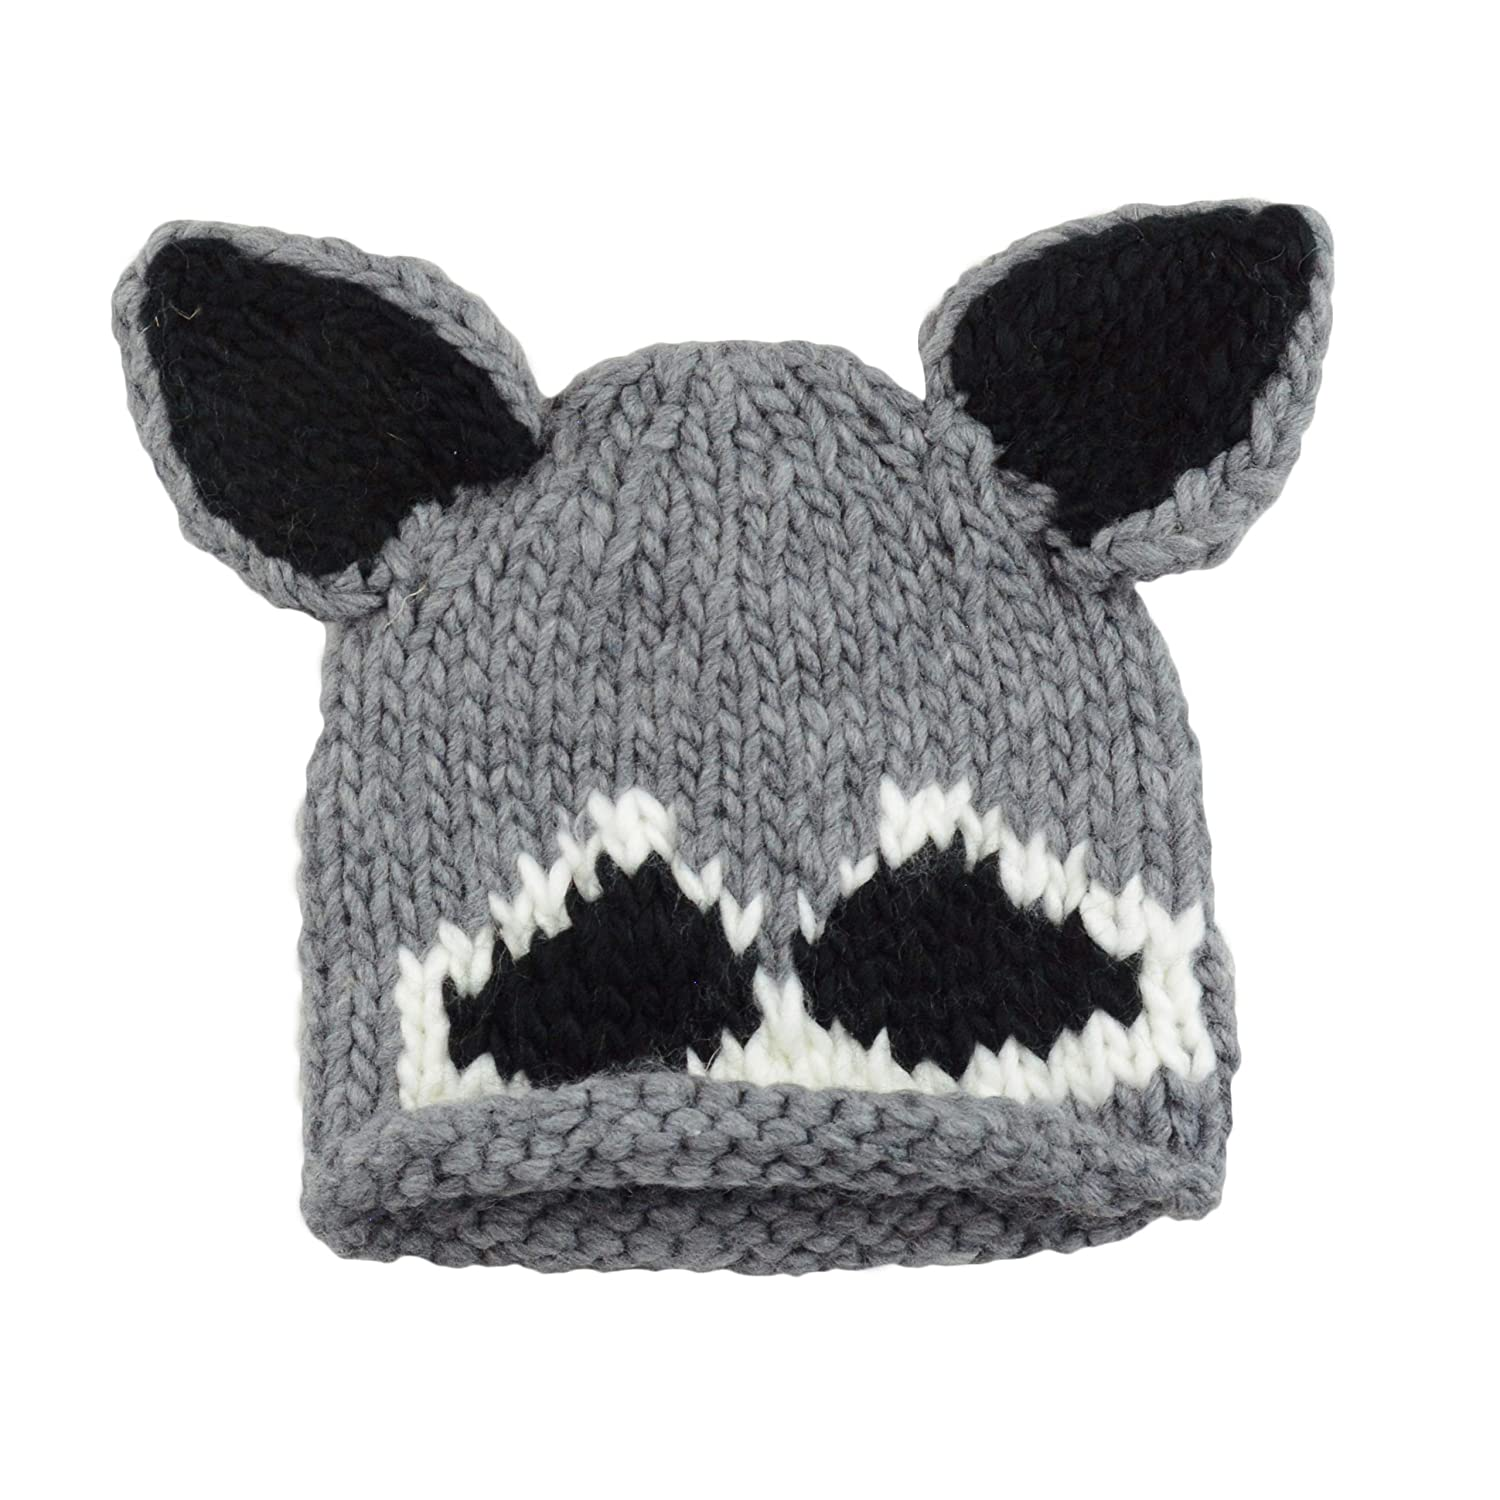 b07a4736807 Amazon.com  Roscoe Raccoon Hand Knit Hat (Small 12-24 Months